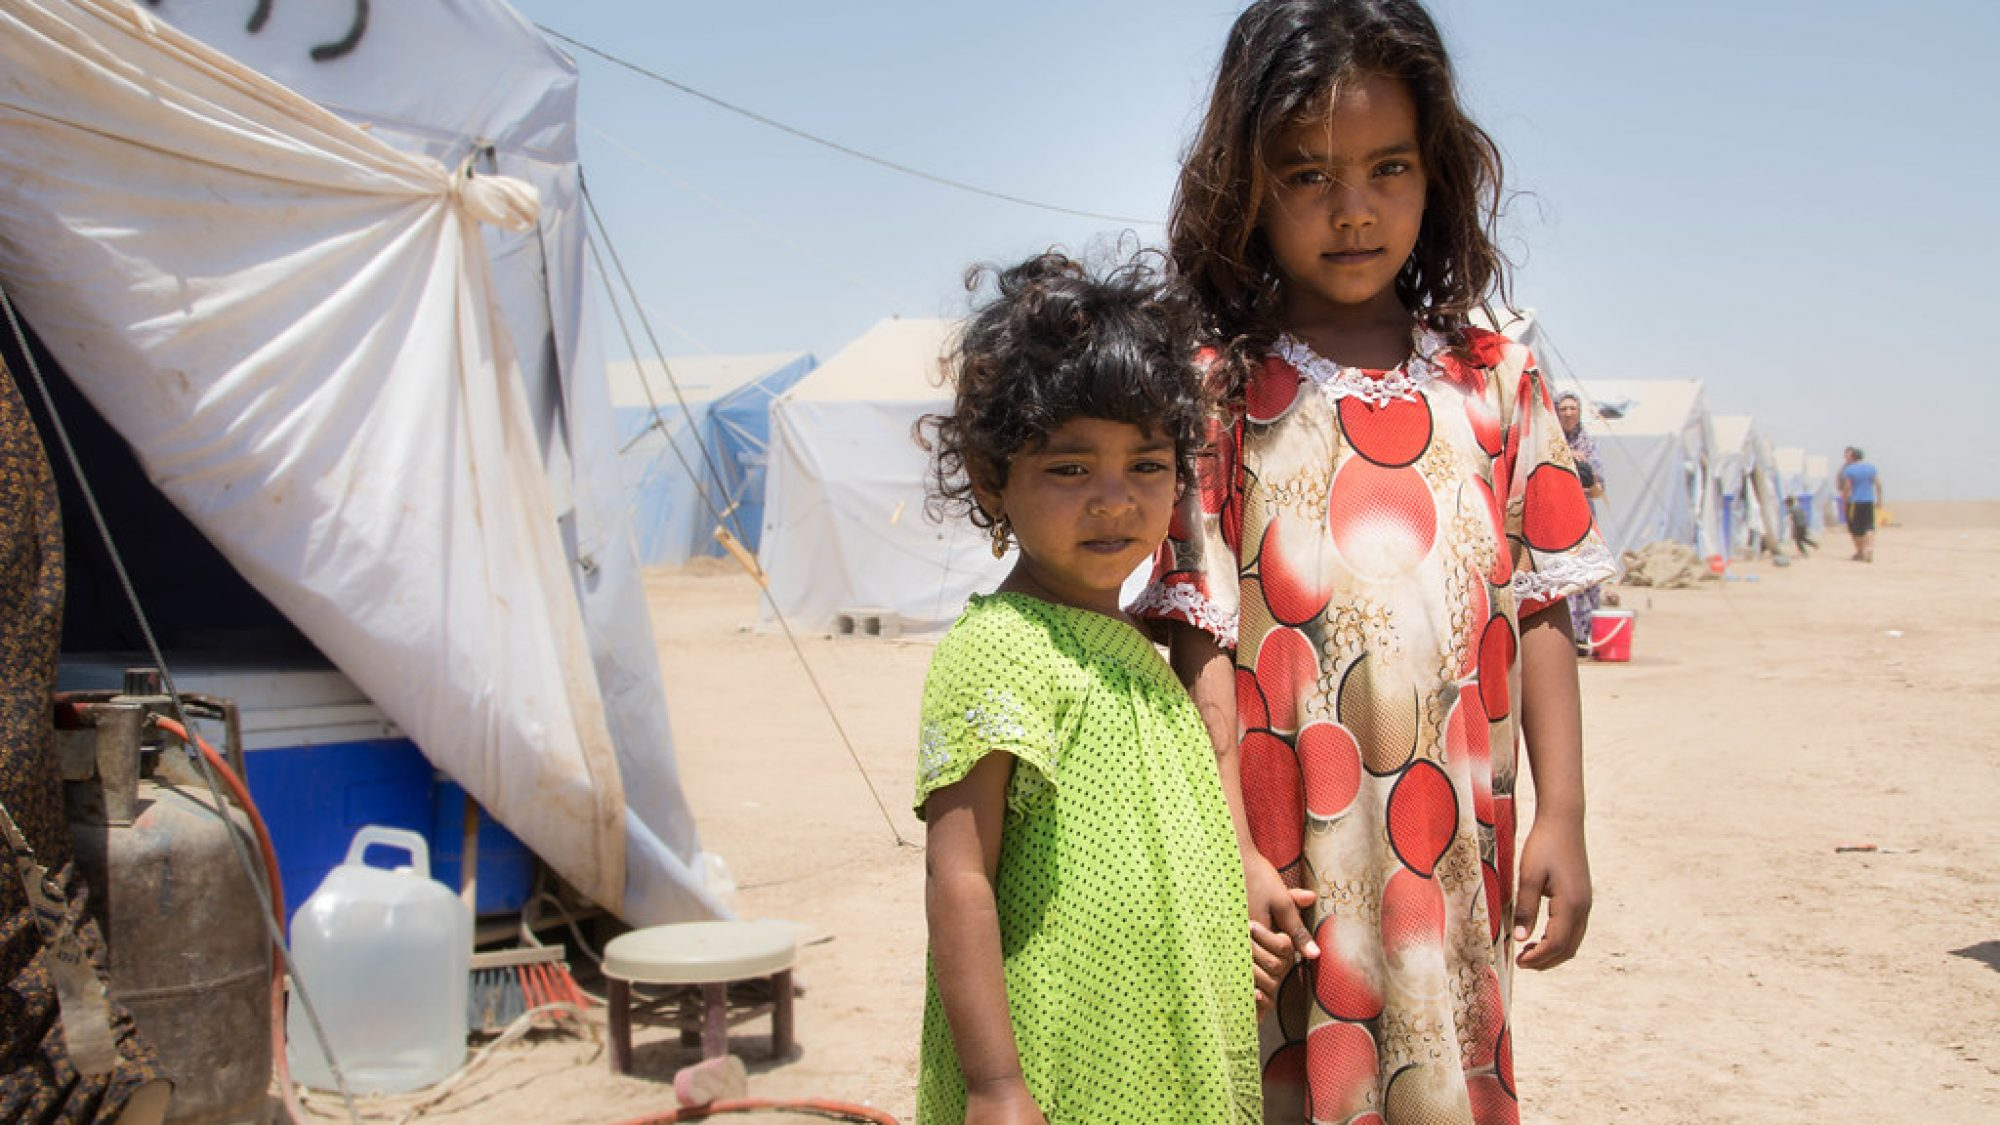 Two Young Girls at Refugee Camp in Iraq